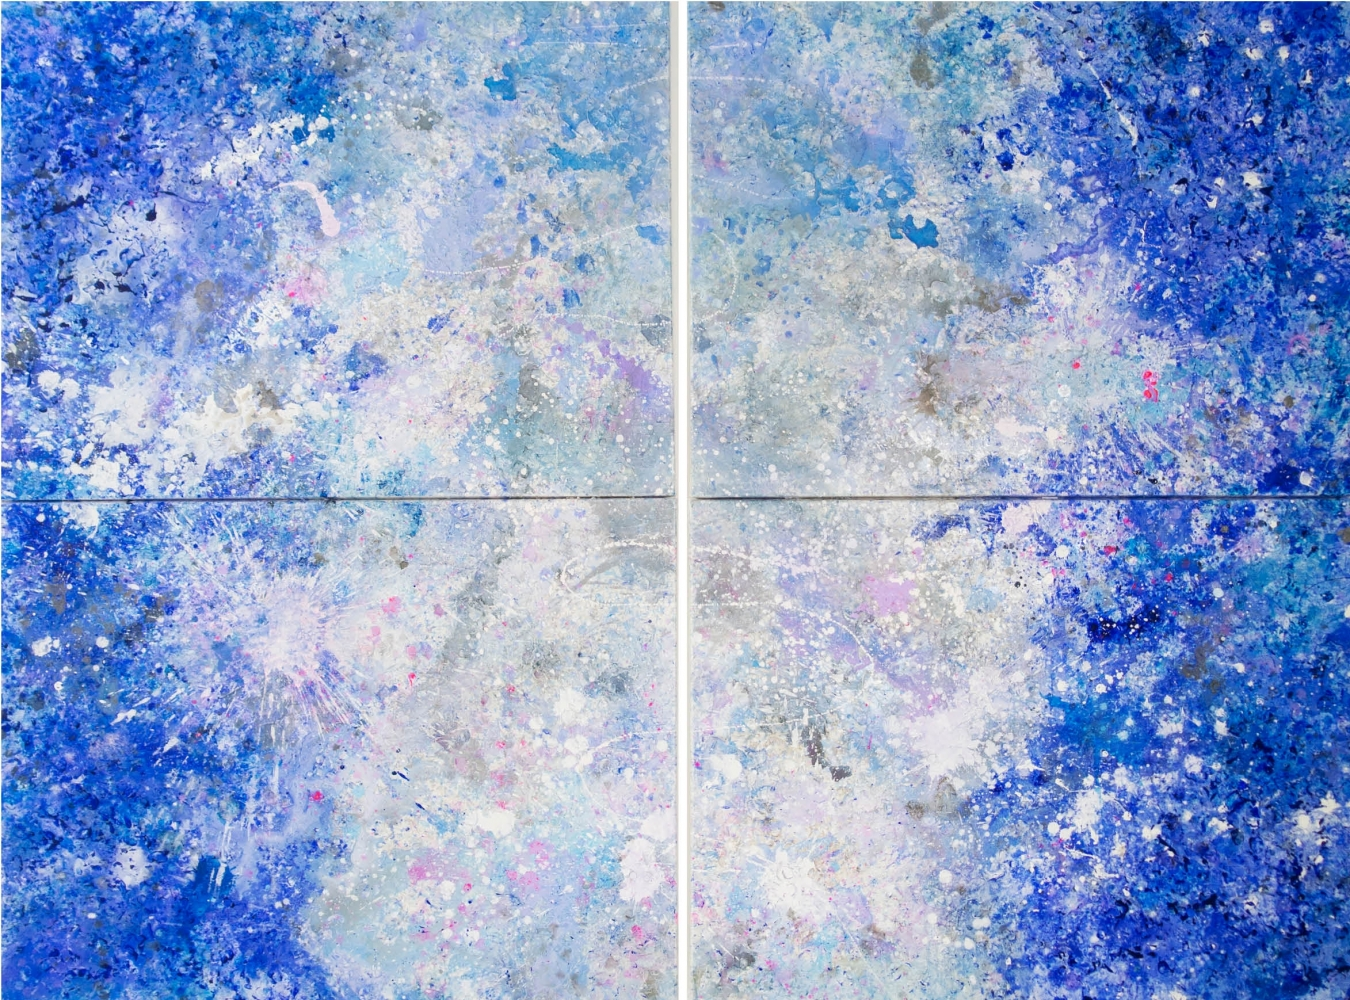 Jill Krutick, Dreamscape Diptych Surprise!, 2017, Acrylic on canvas, 72 x 96 inches